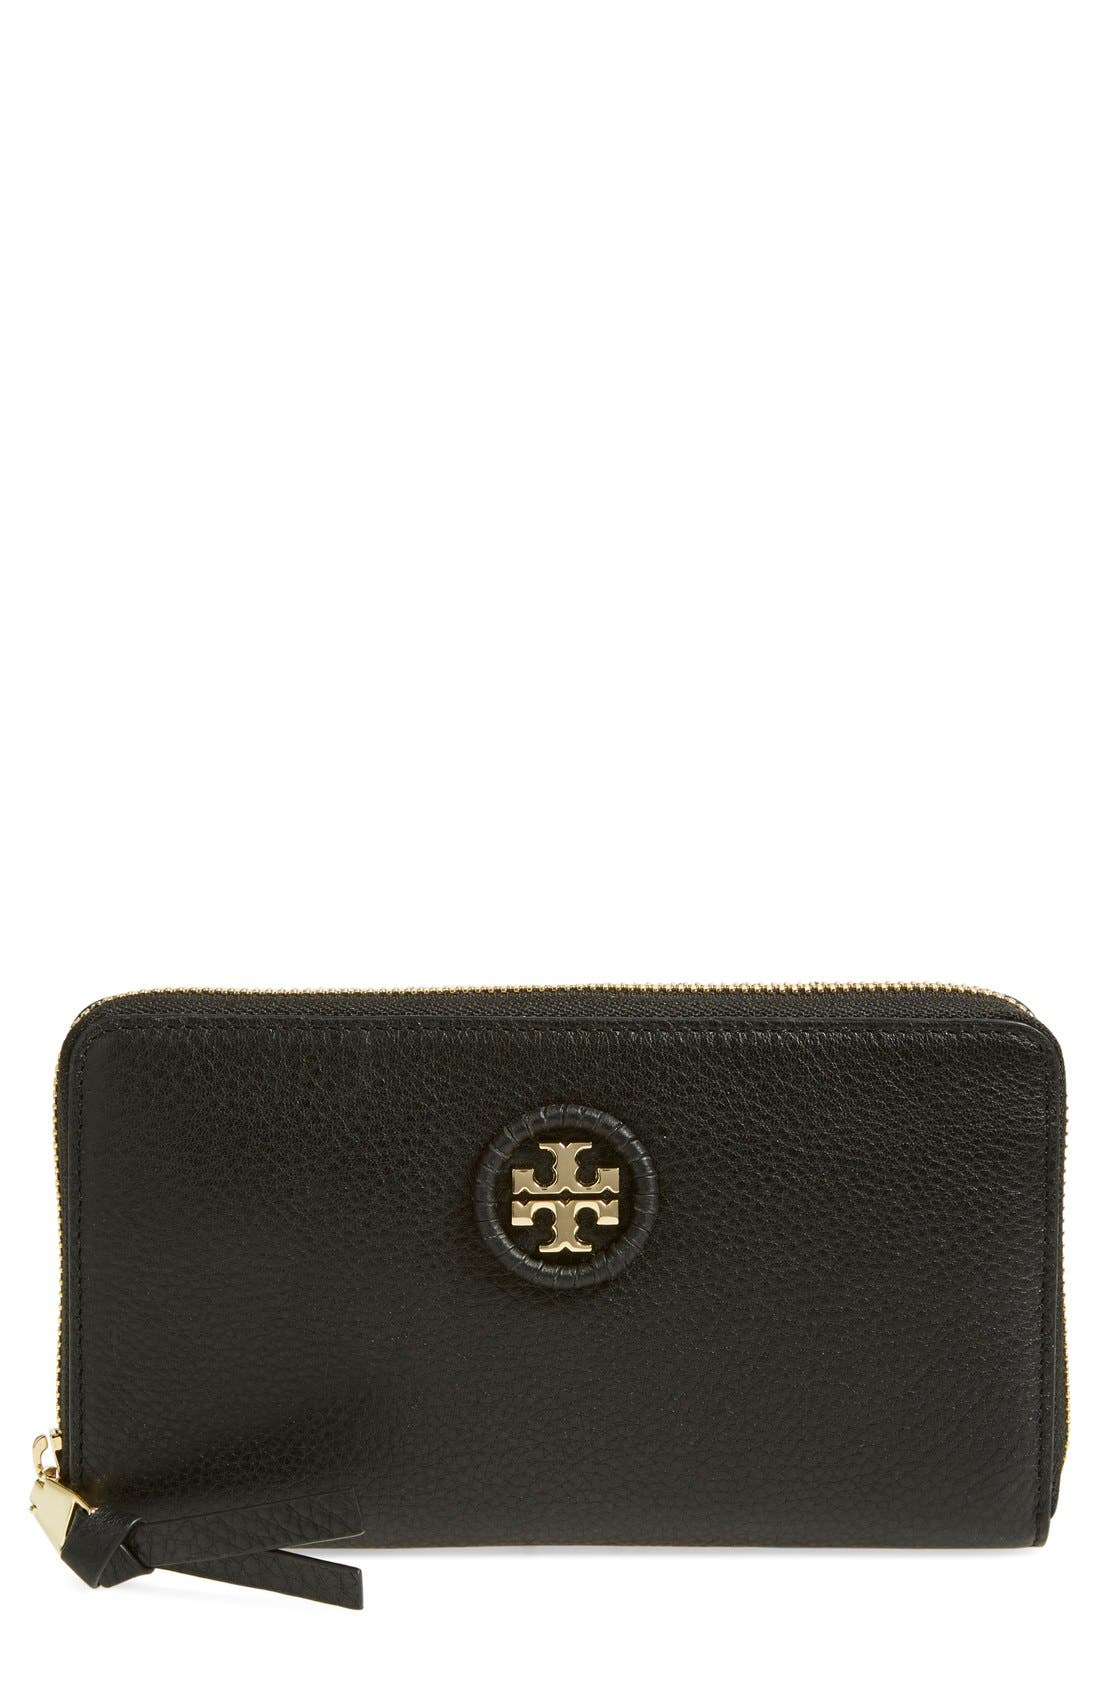 Alternate Image 1 Selected - Tory Burch Leather Zip Around Continental Wallet (Nordstrom Exclusive)